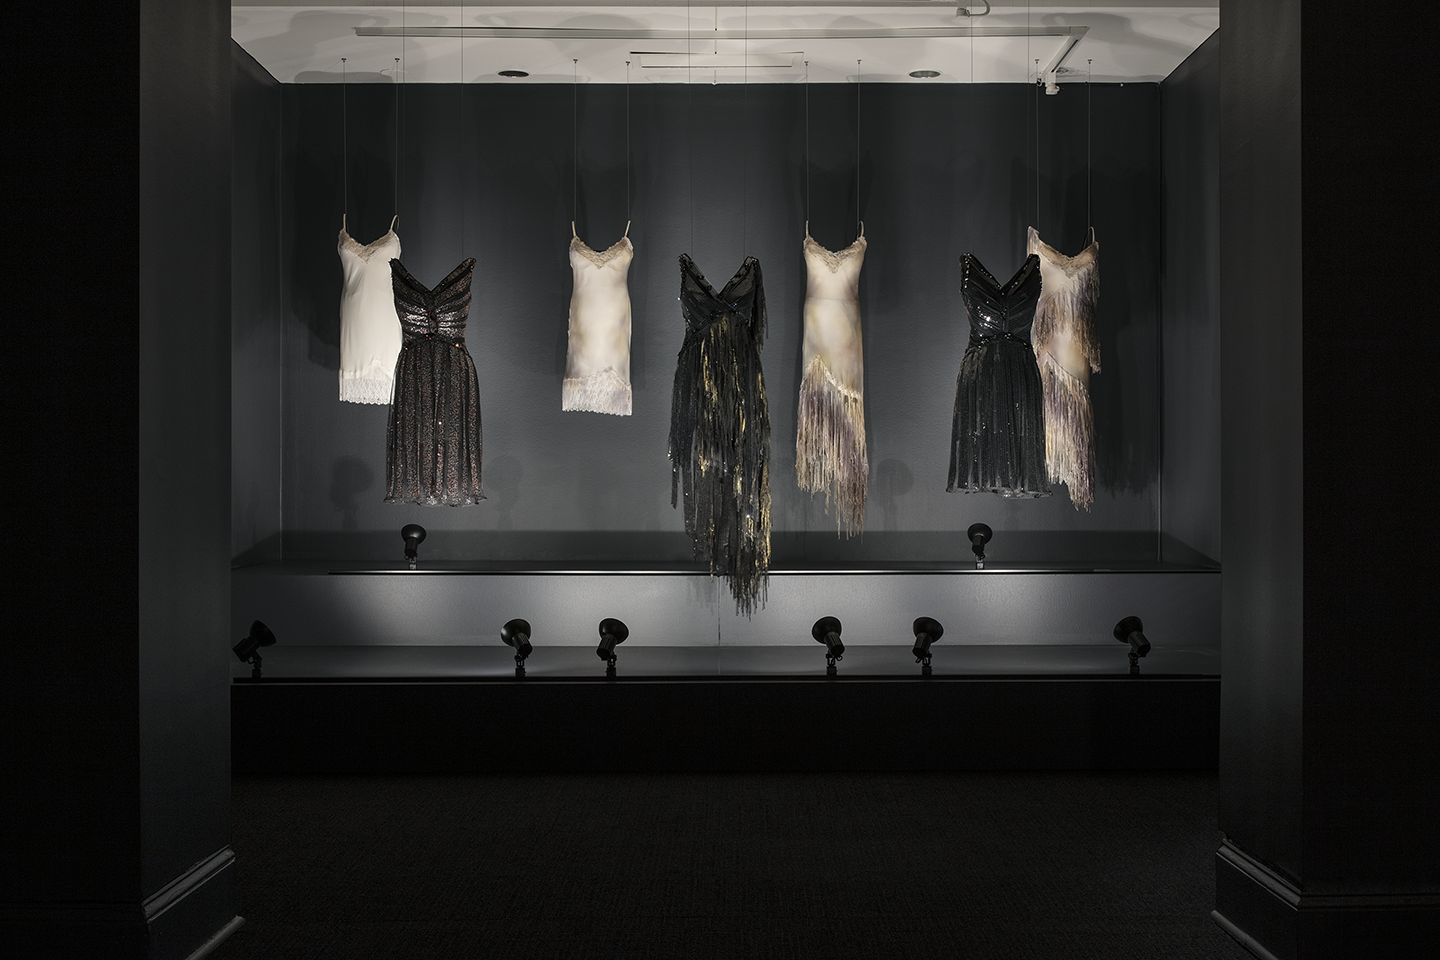 Rodarte exhibition installation view at the National Museum of Women in the Arts, D.C.; Photo: Floto+Warner